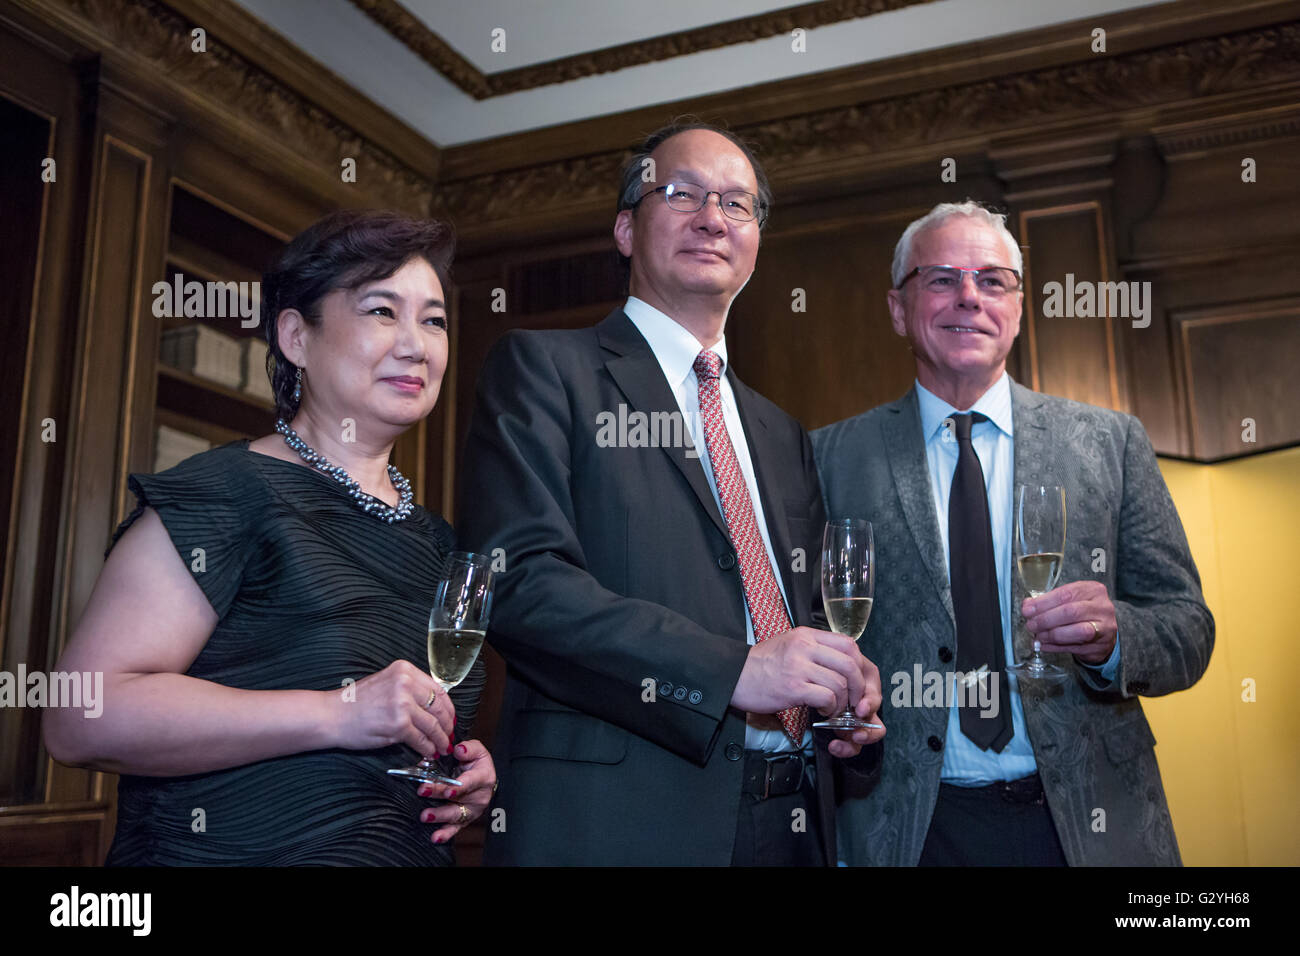 New York, NY - 3 June 2016. Reiichiro Takahashi, Ambassador and Consulate General of Japan to New York, toasting - Stock Image